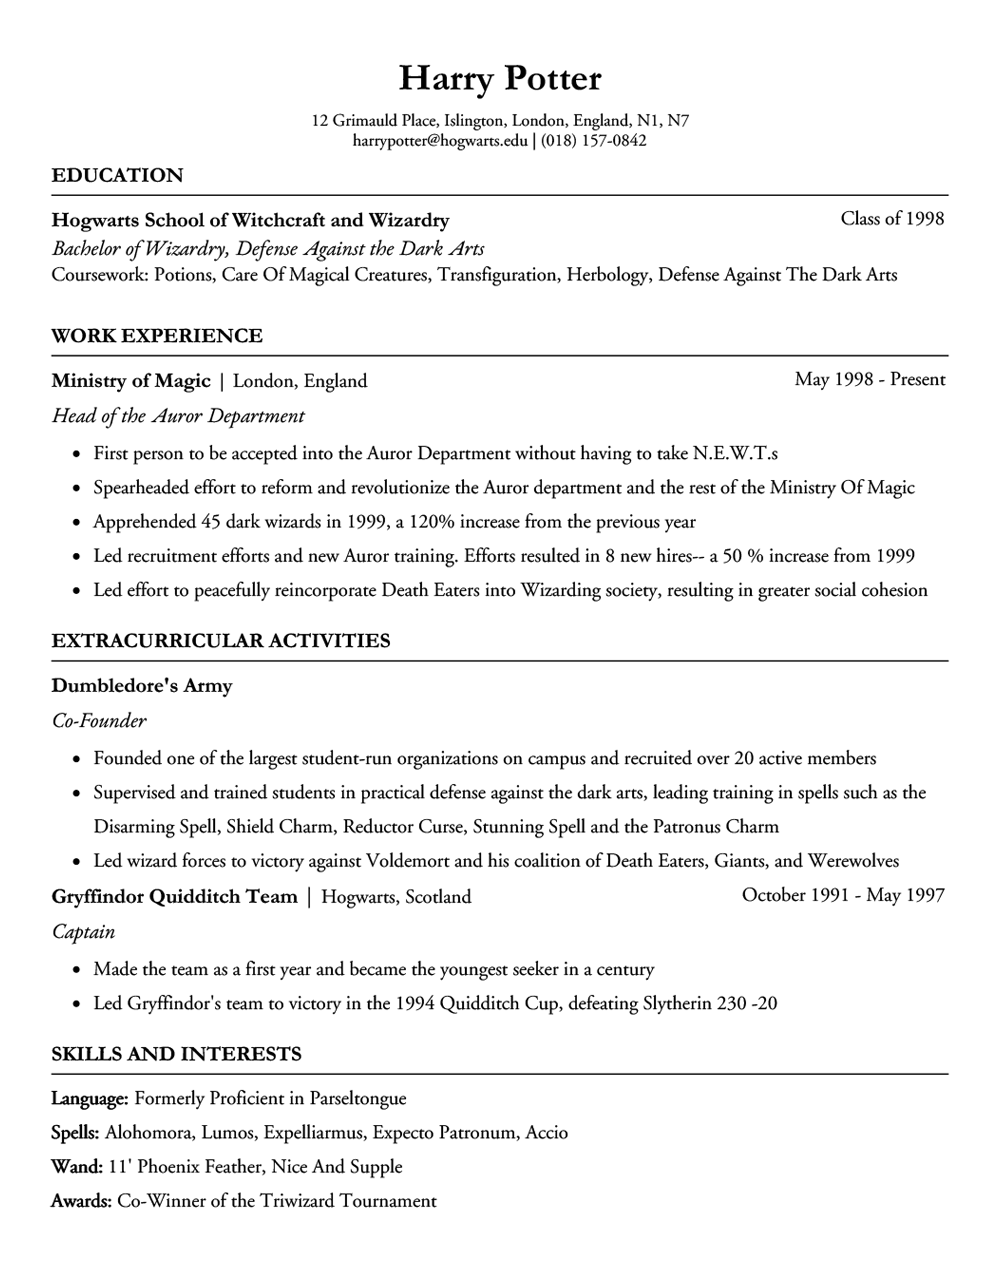 Free Resume Builder for college students- Ivy League templates! Free ...